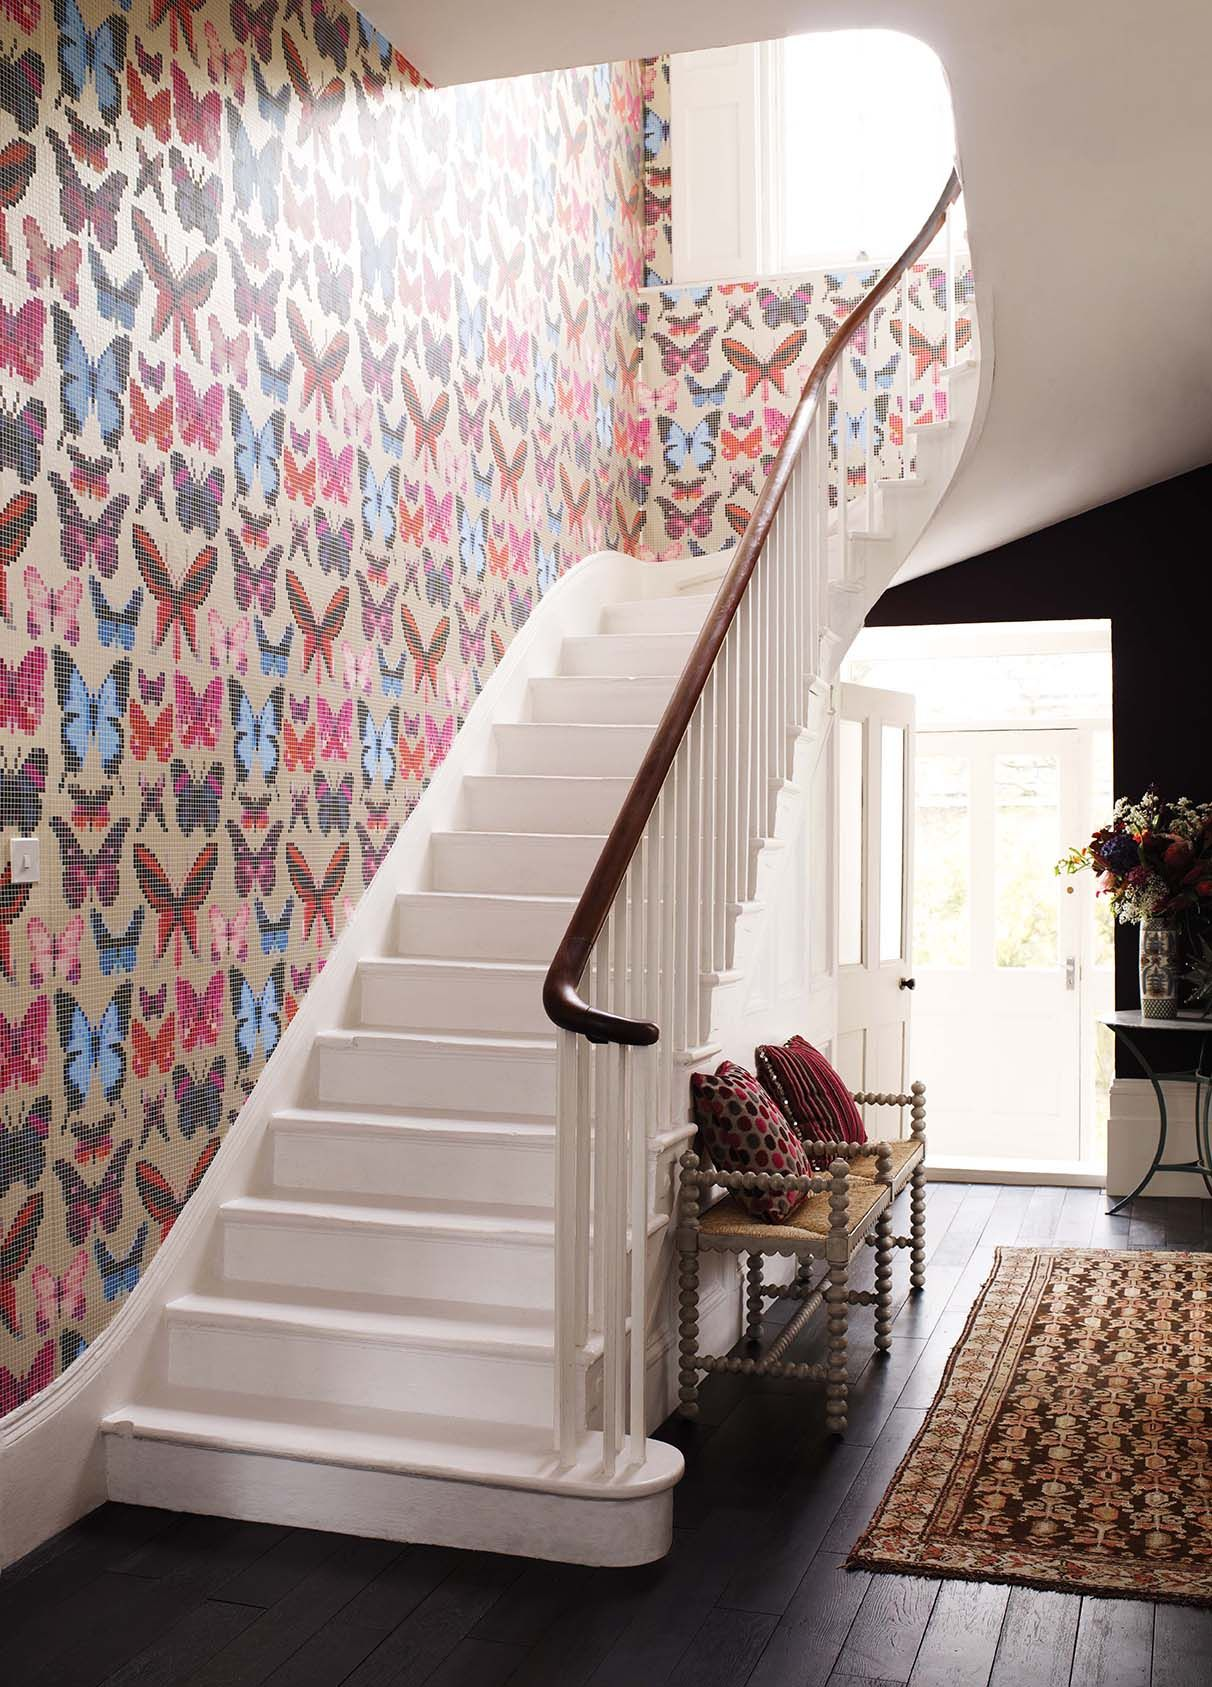 Hallway and stairs wallpaper  Butterfly House wallpaper from the Verdanta collection by Osborne